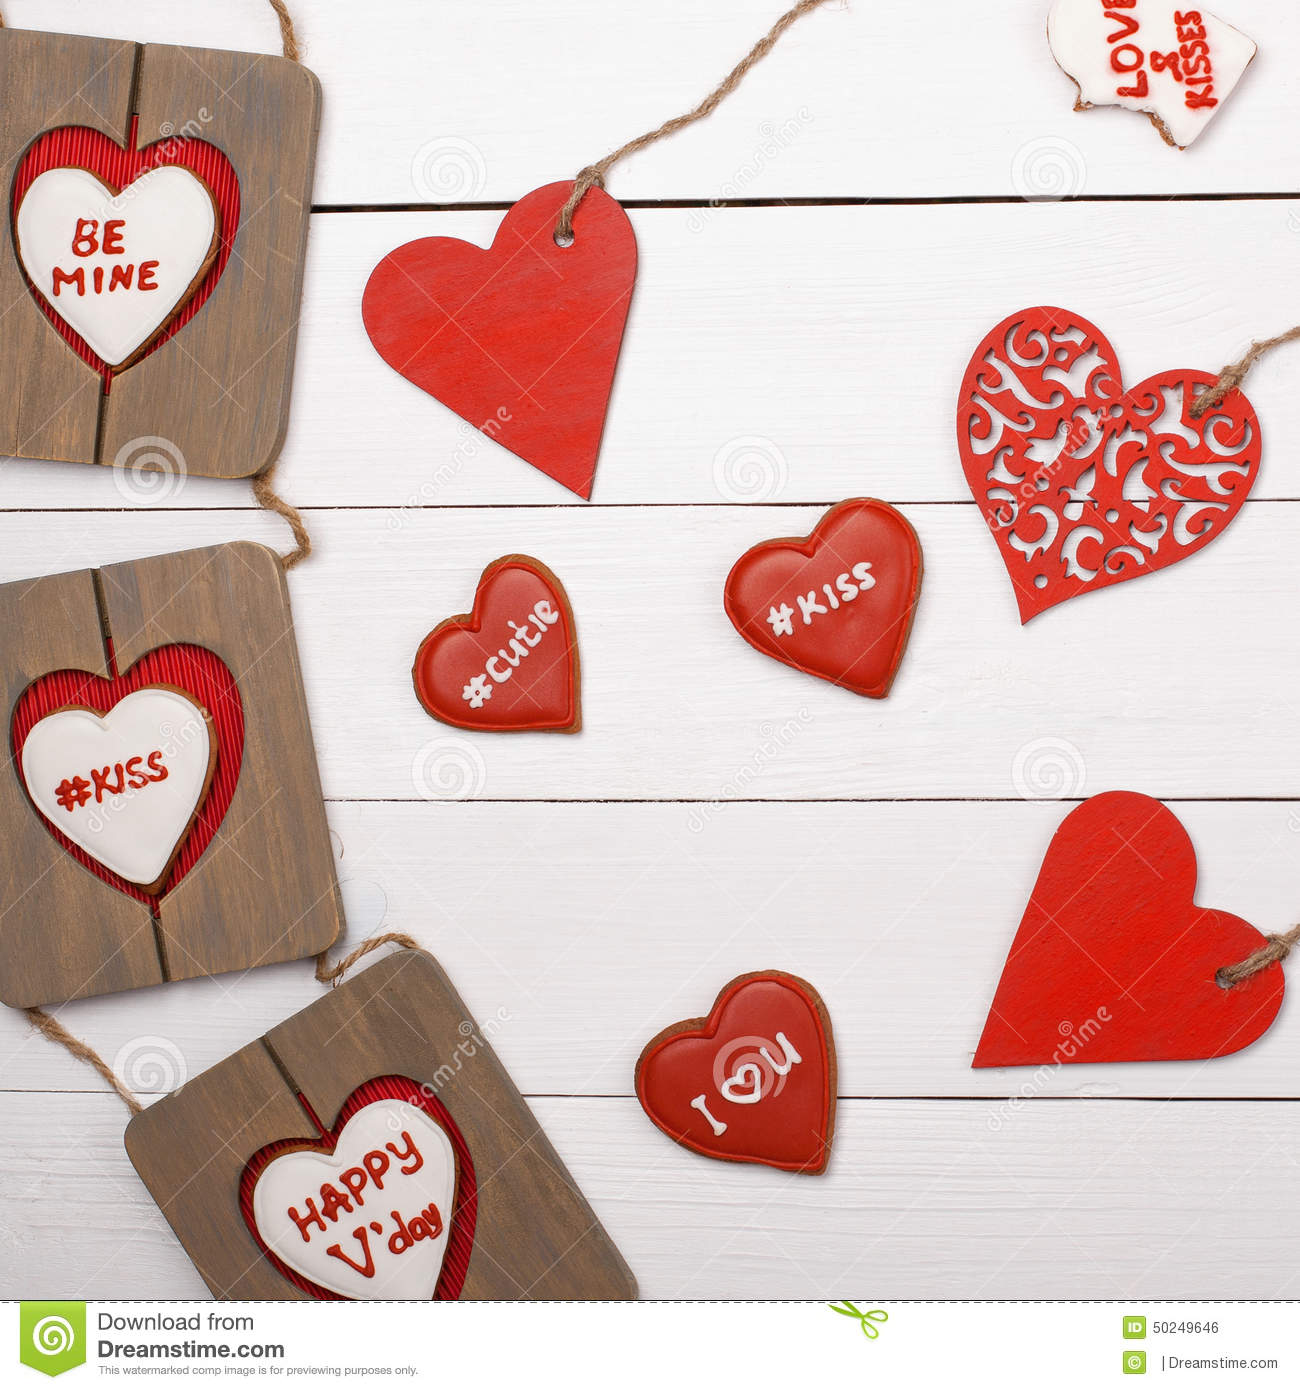 Sweet things for valentine 39 s day wood heart cookies for Cool things to do on valentine s day